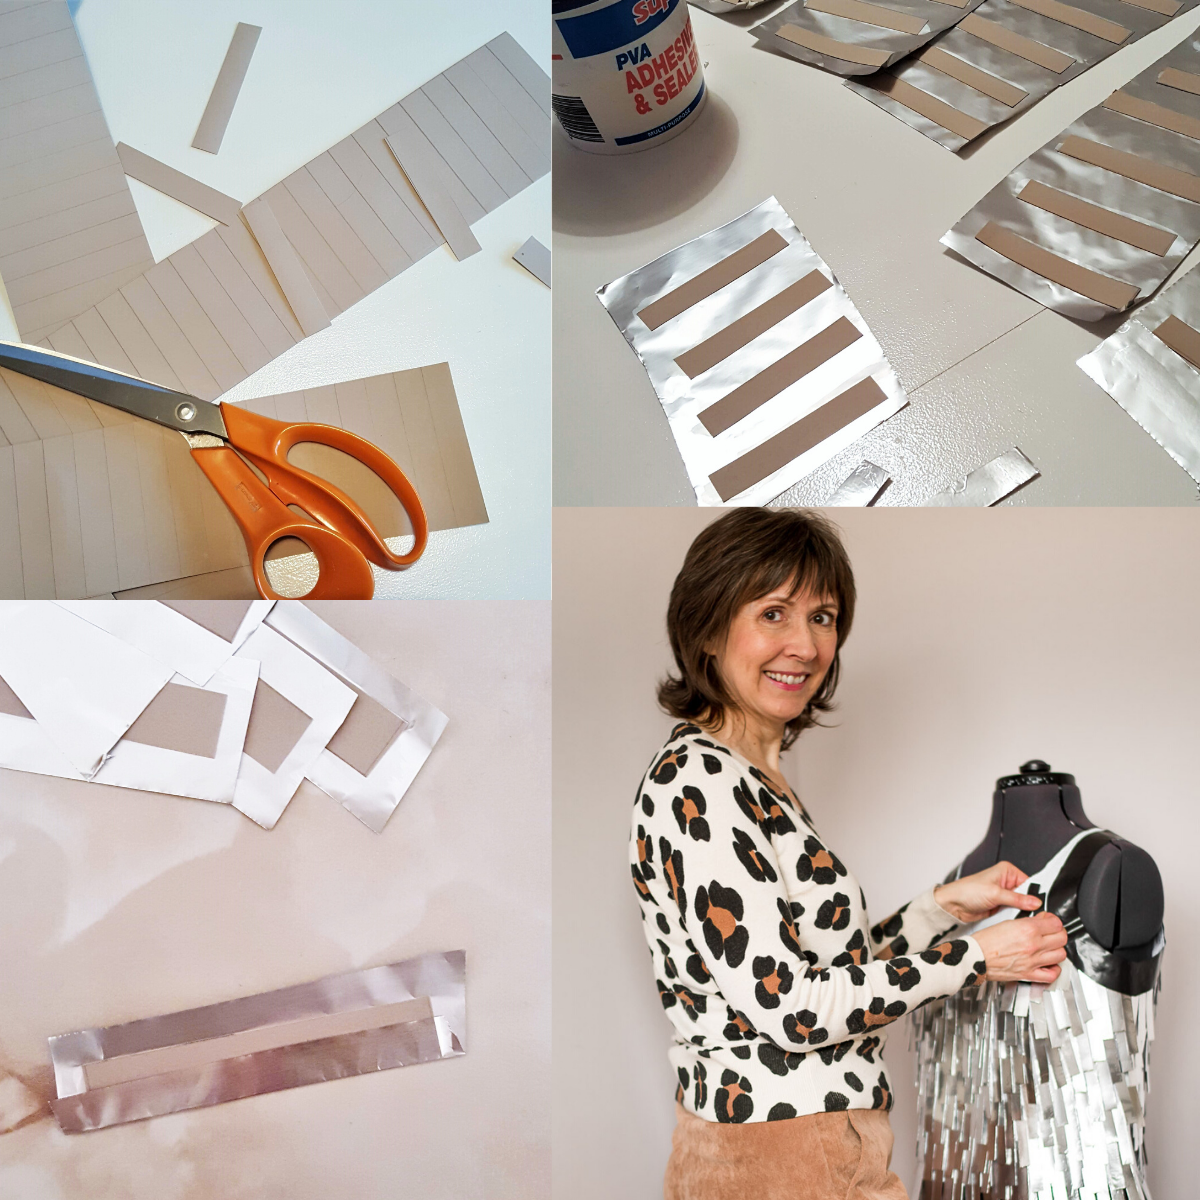 Montage of process for 'An Unconventional Cocktail Outfit'